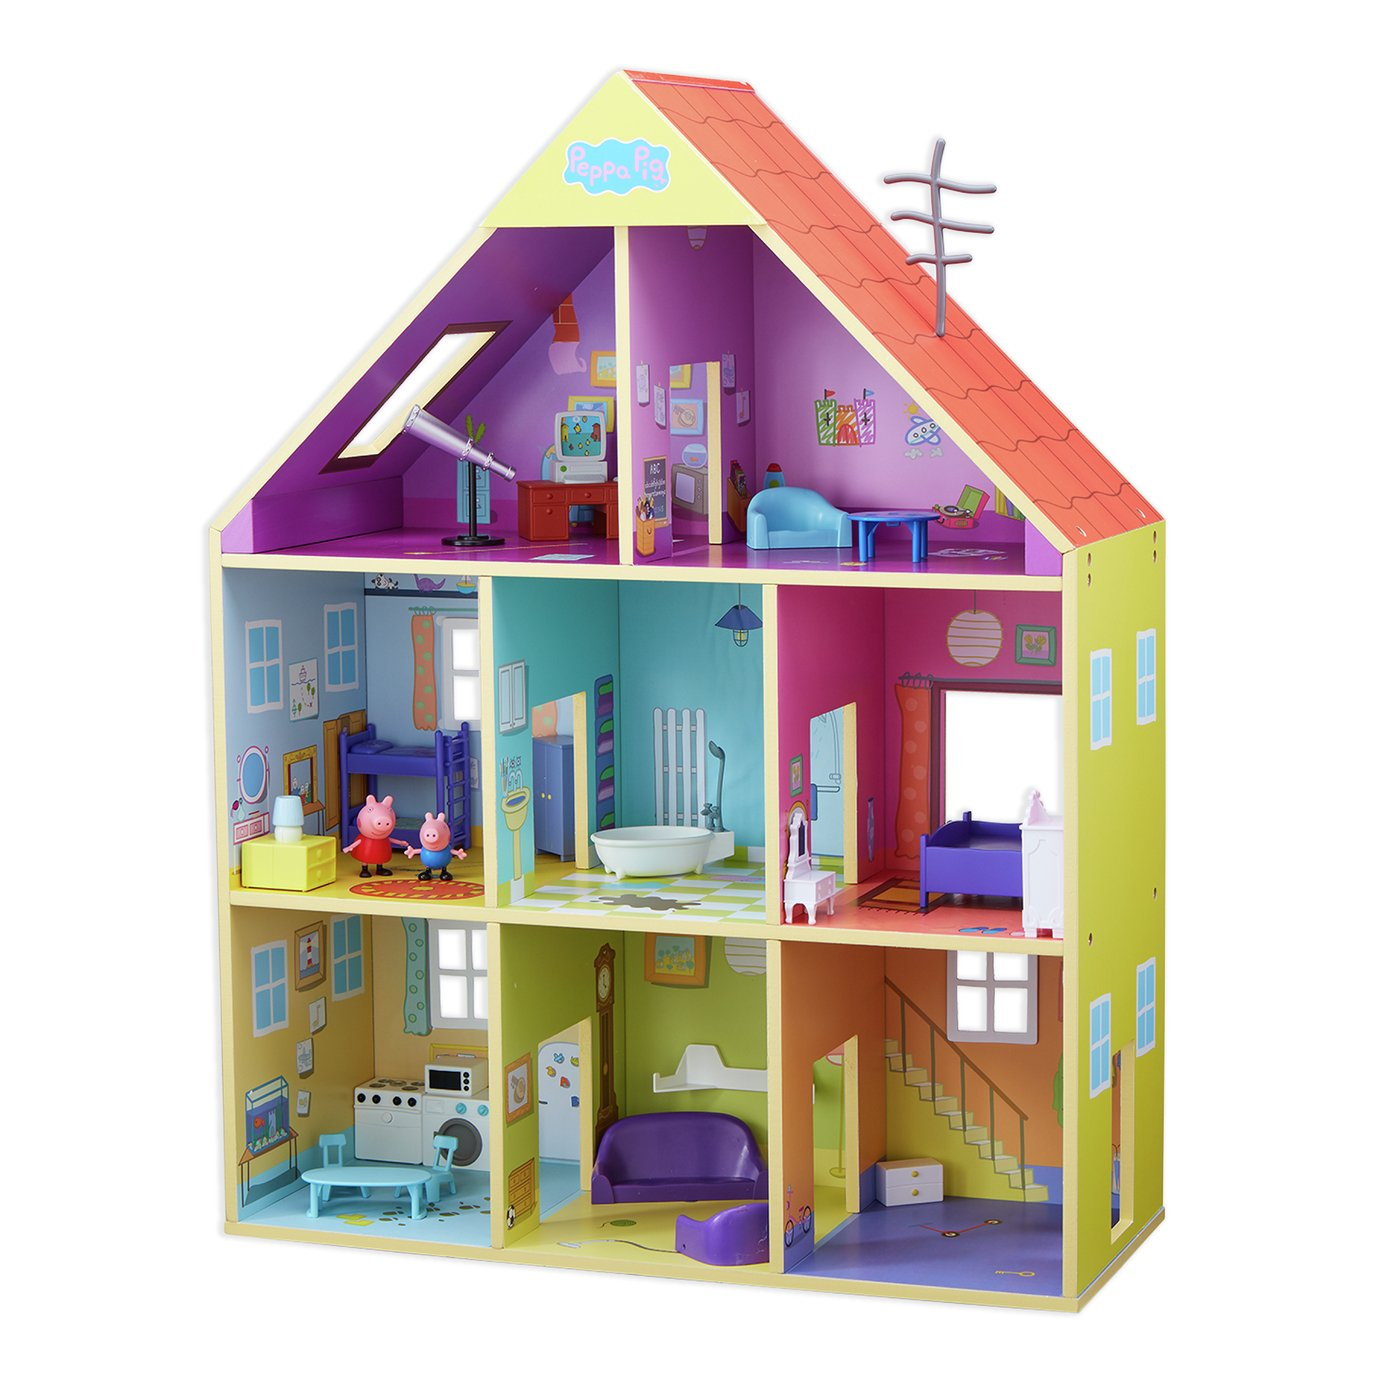 Peppa Pig Deluxe Wooden Playhouse